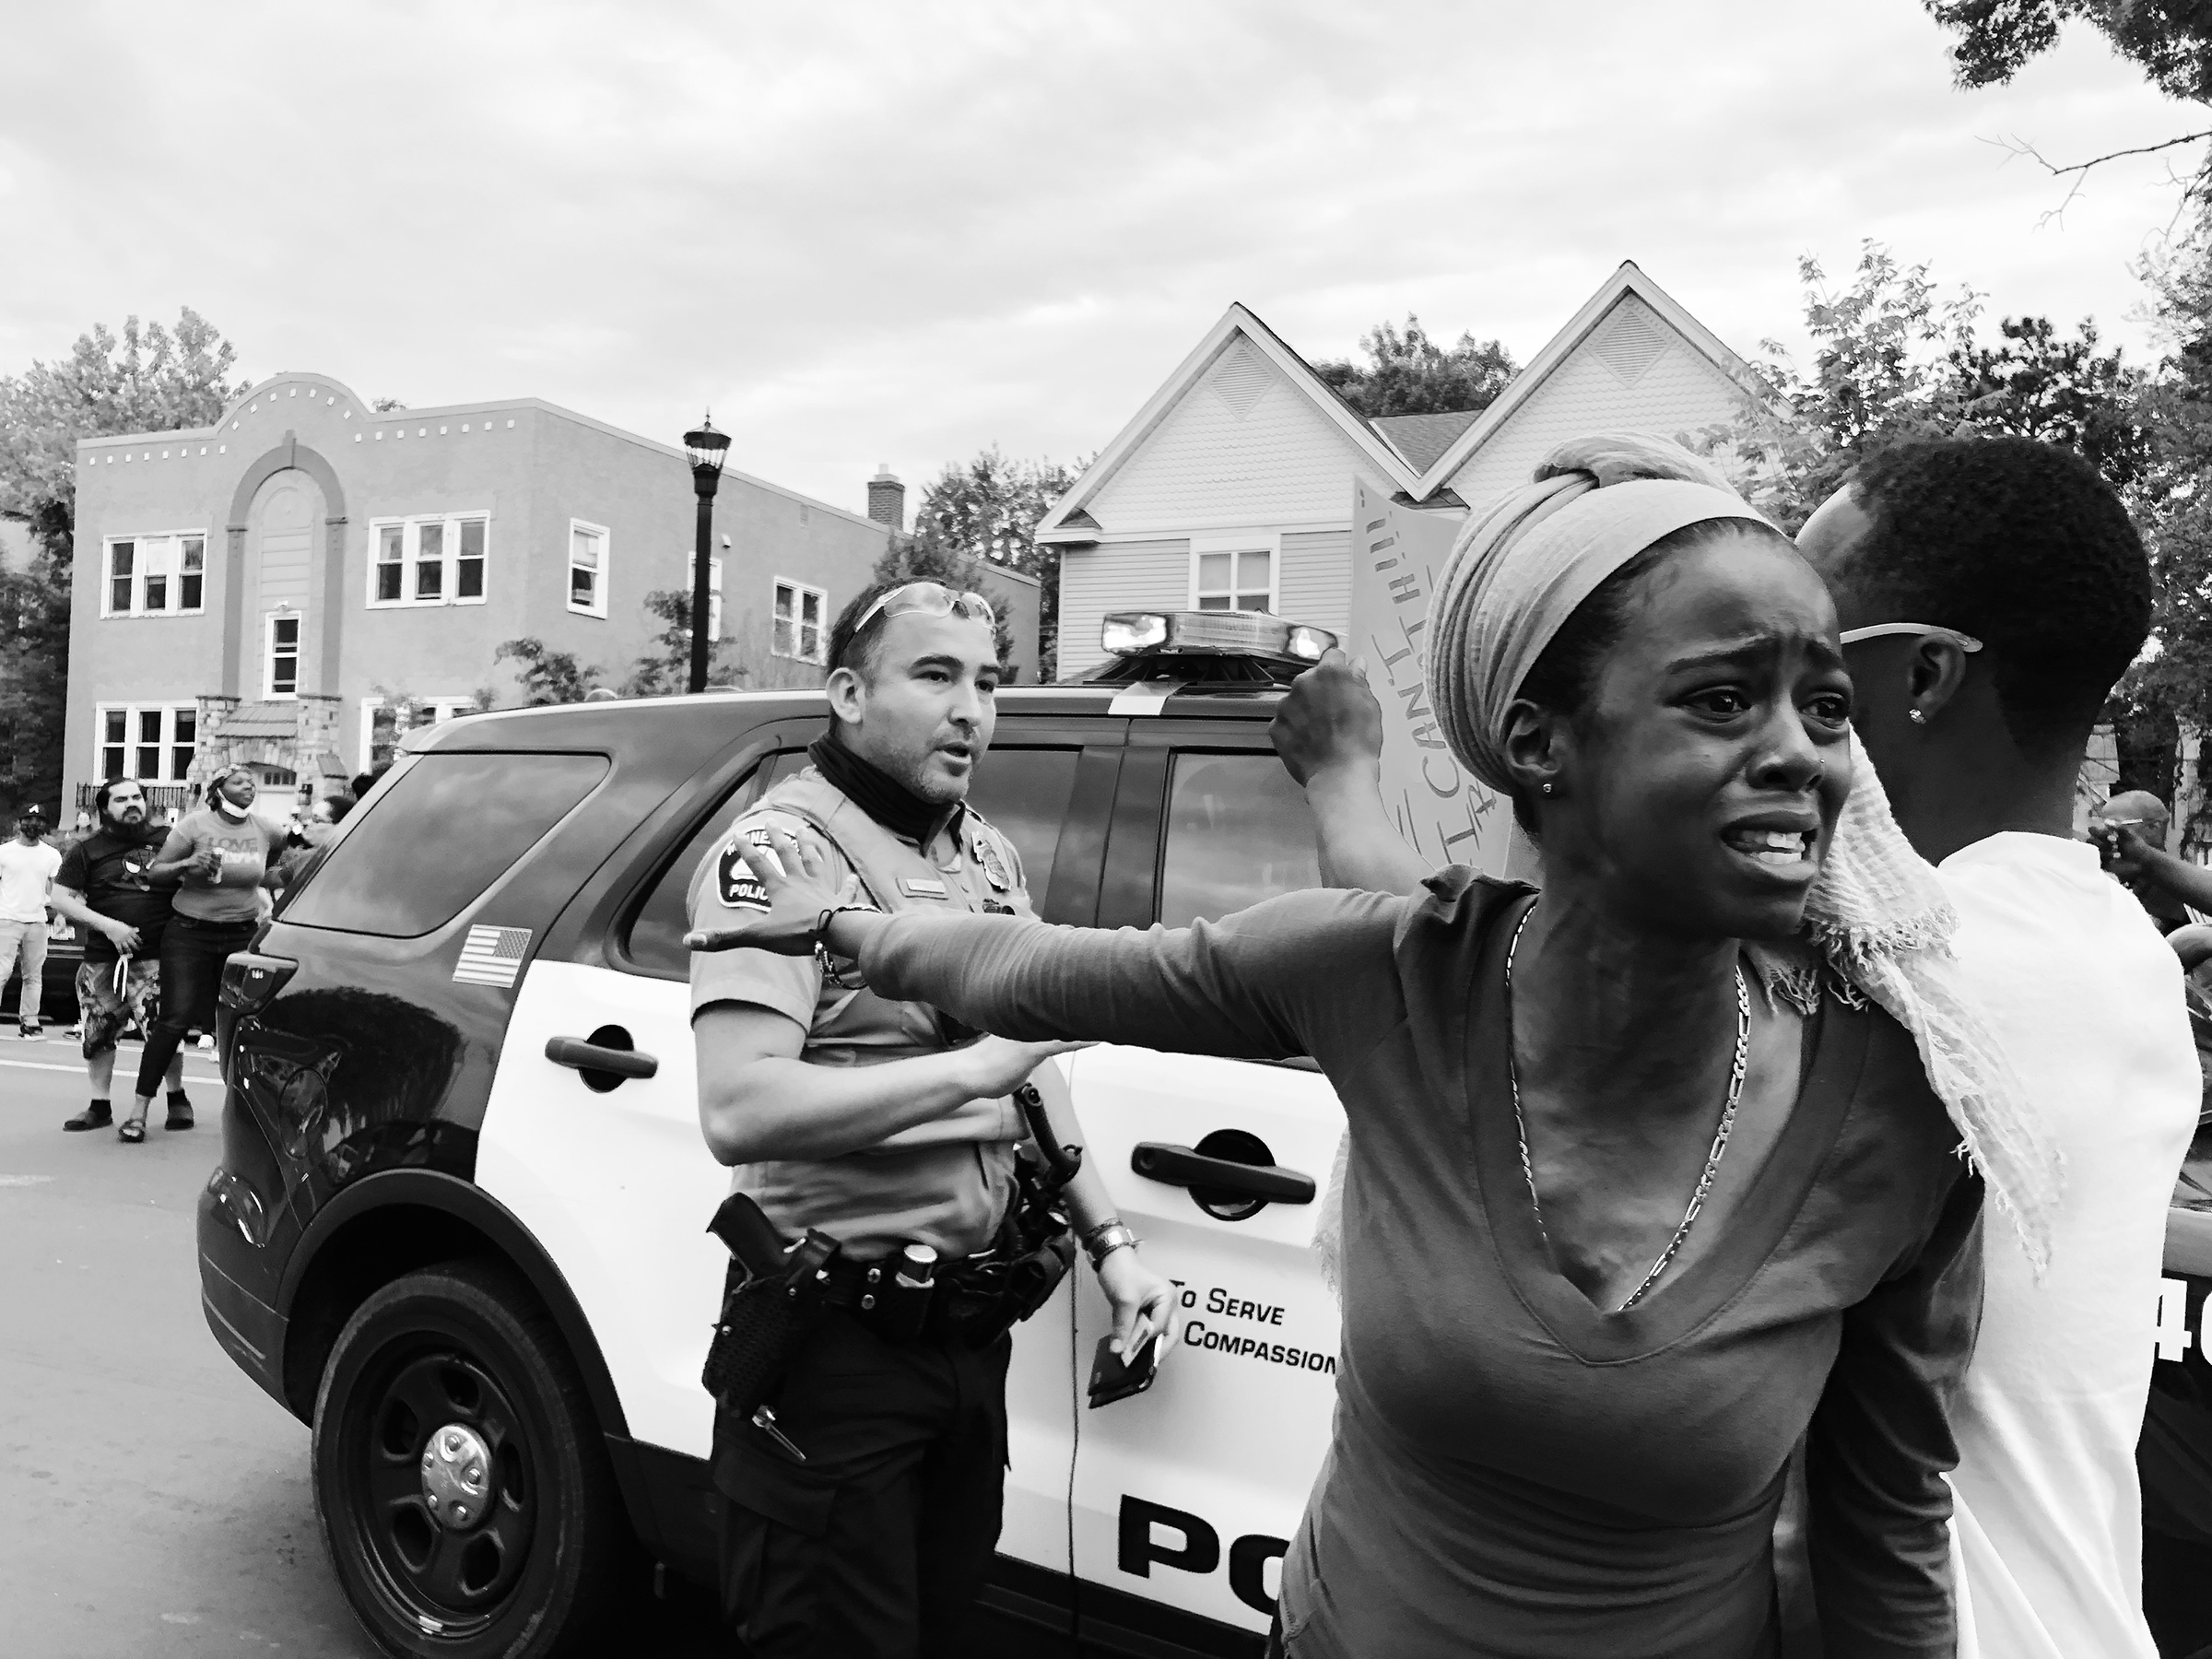 A young woman outraged by the death of George Floyd speaks to a crowd and blocks a police officer's vehicle with a group of protesters in Minneapolis on May 27.